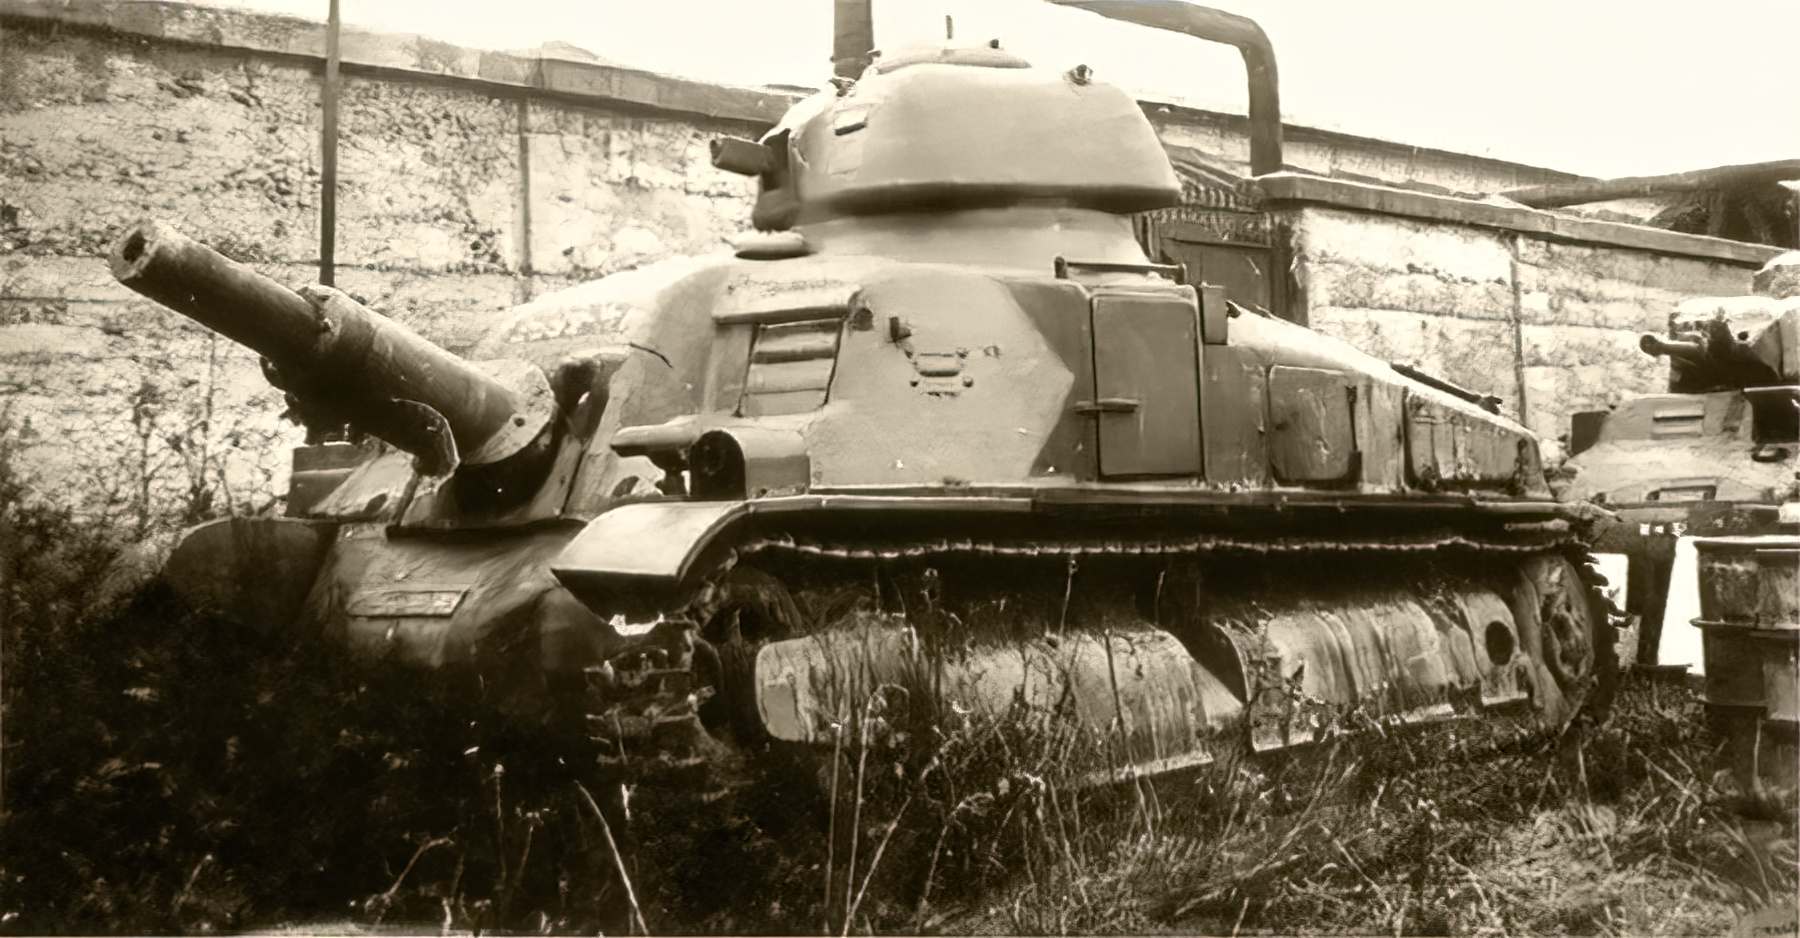 French Army Char SAu 40 an attempted SPG based on the Somua S35 chassis 01